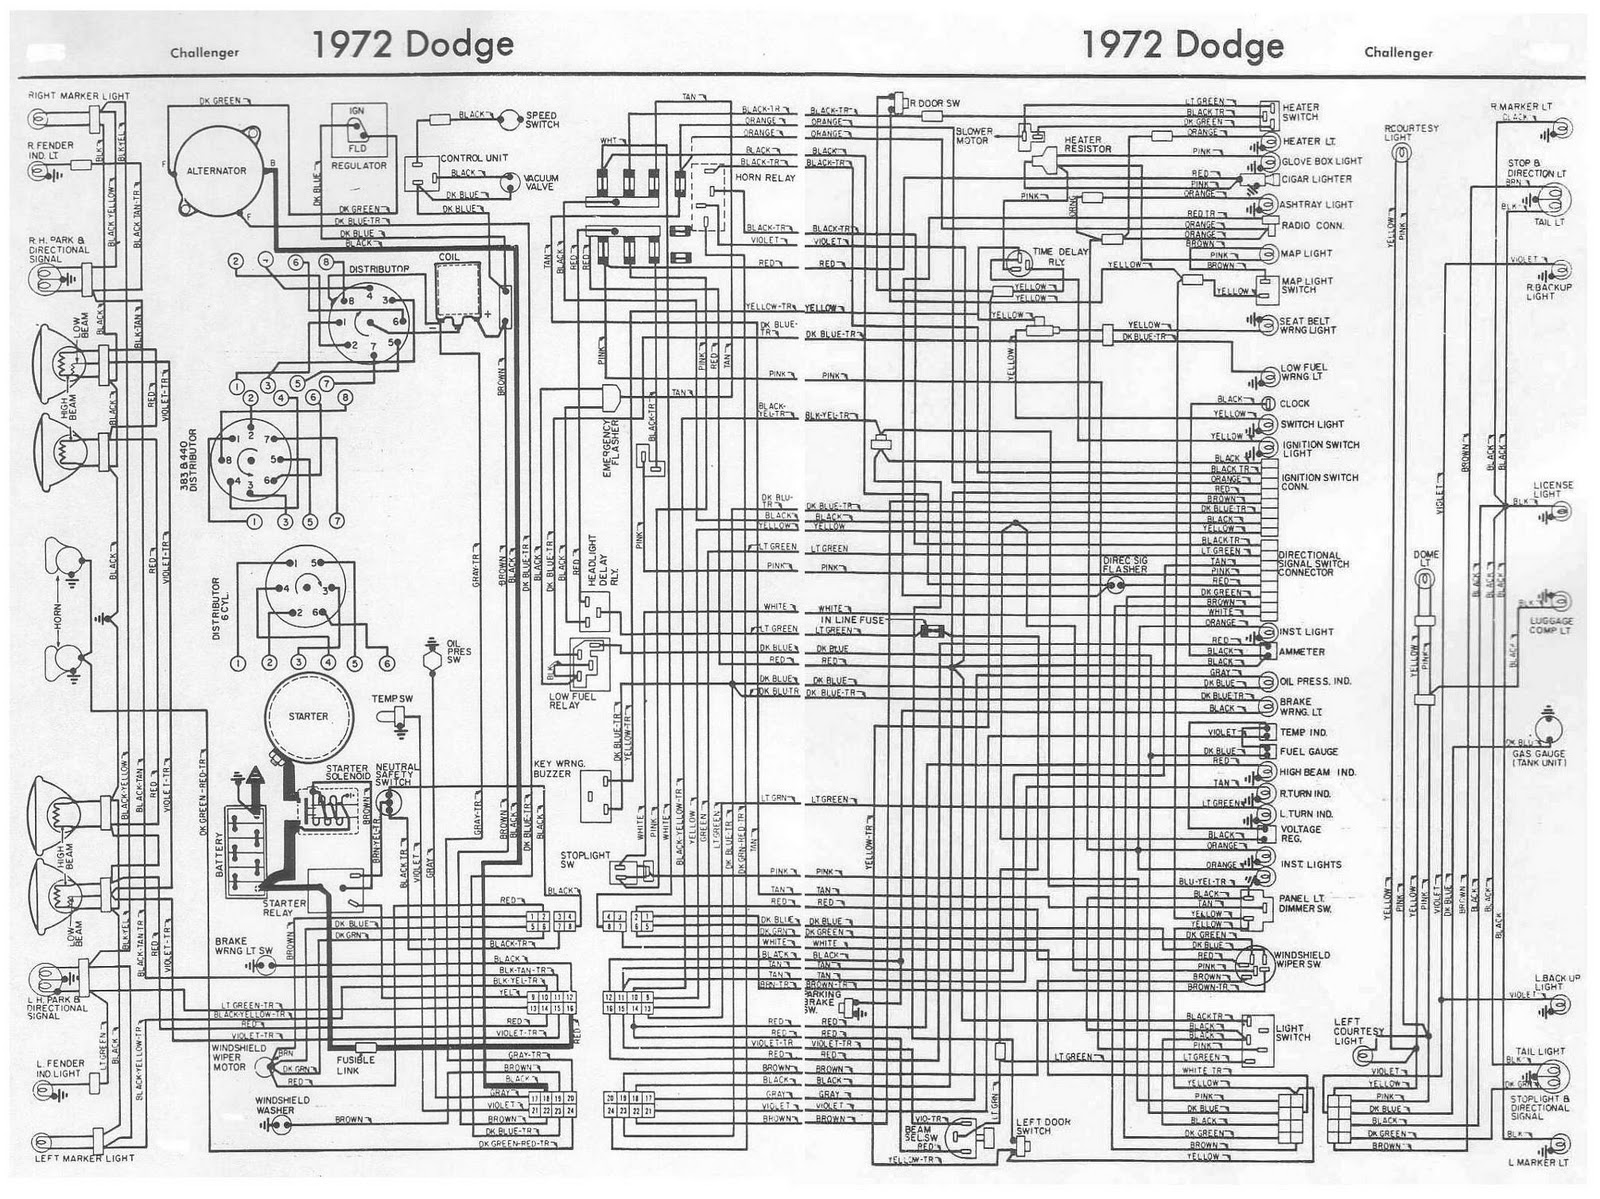 Dodge+Challenger+1972+Complete+Wiring+Diagram dodge challenger 1972 complete wiring diagram all about wiring 1970 dodge challenger wiring diagram at webbmarketing.co